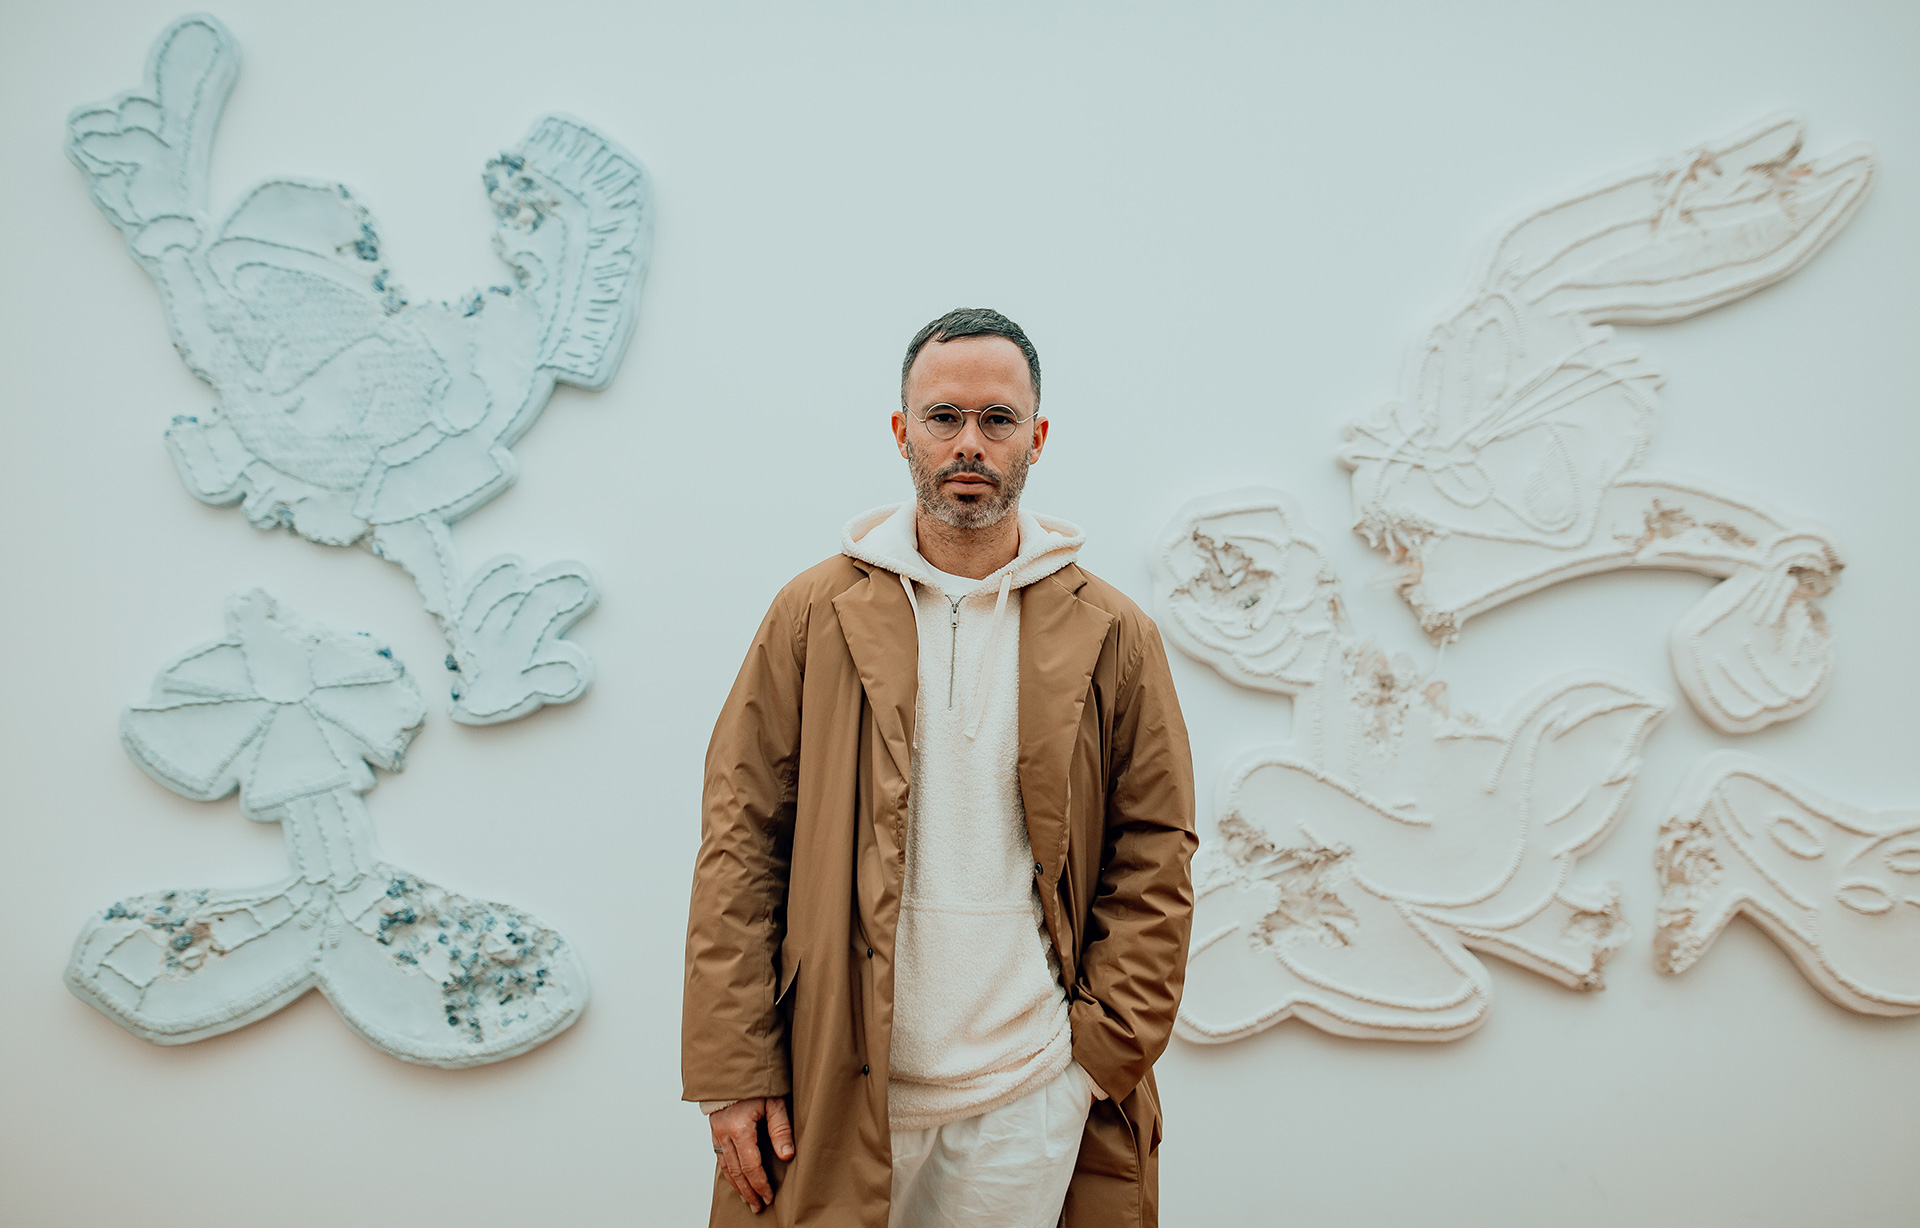 The artist - Daniel Arsham | Connecting Time | Daniel Arsham | STIR